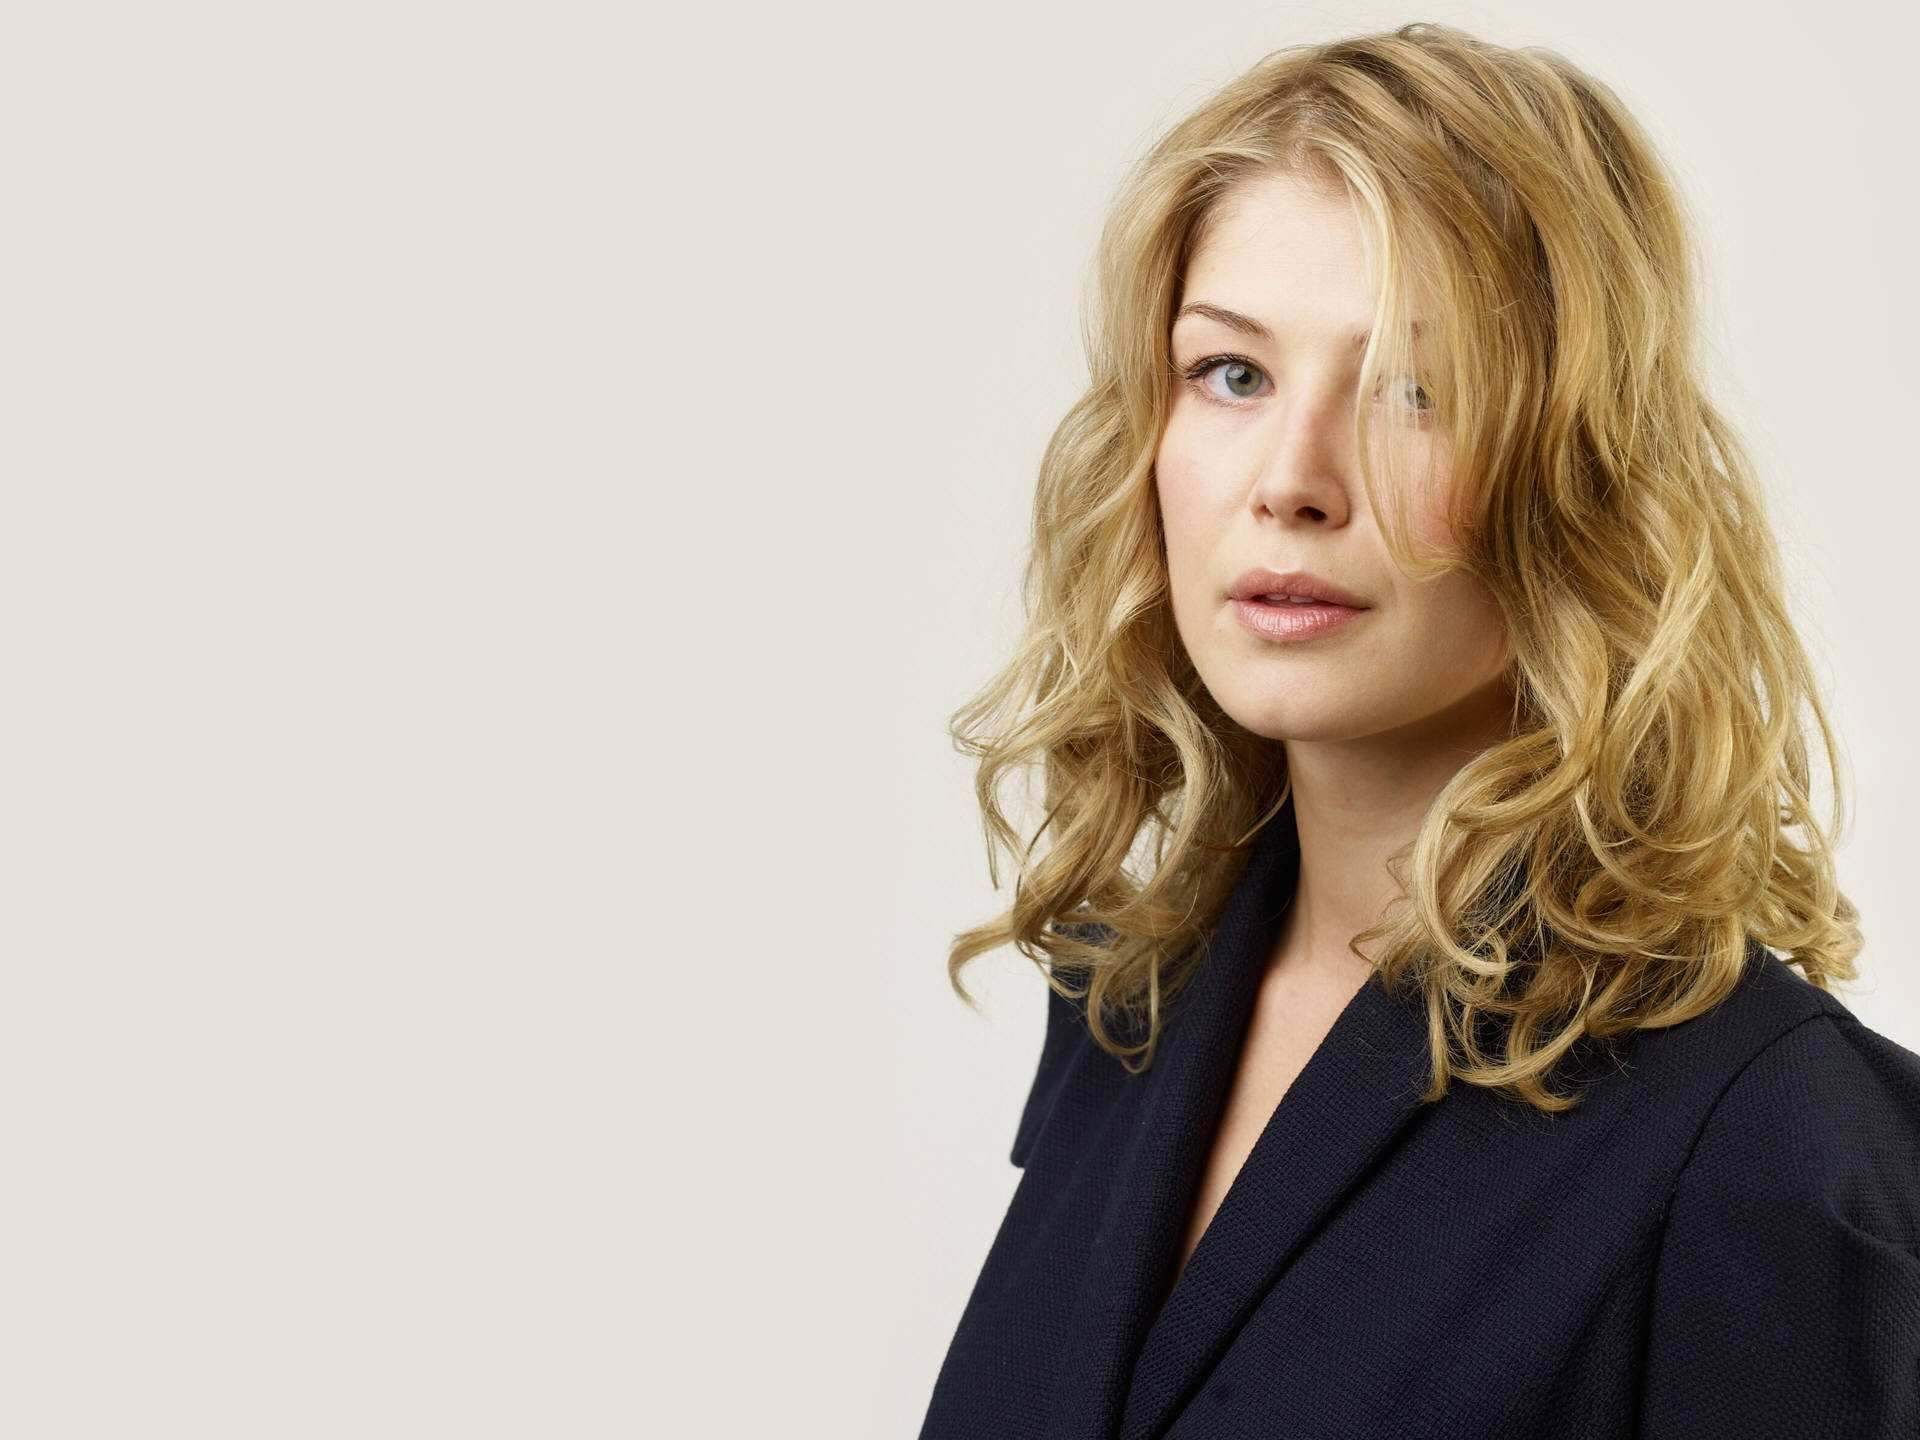 1920x1440 - Rosamund Pike Wallpapers 21